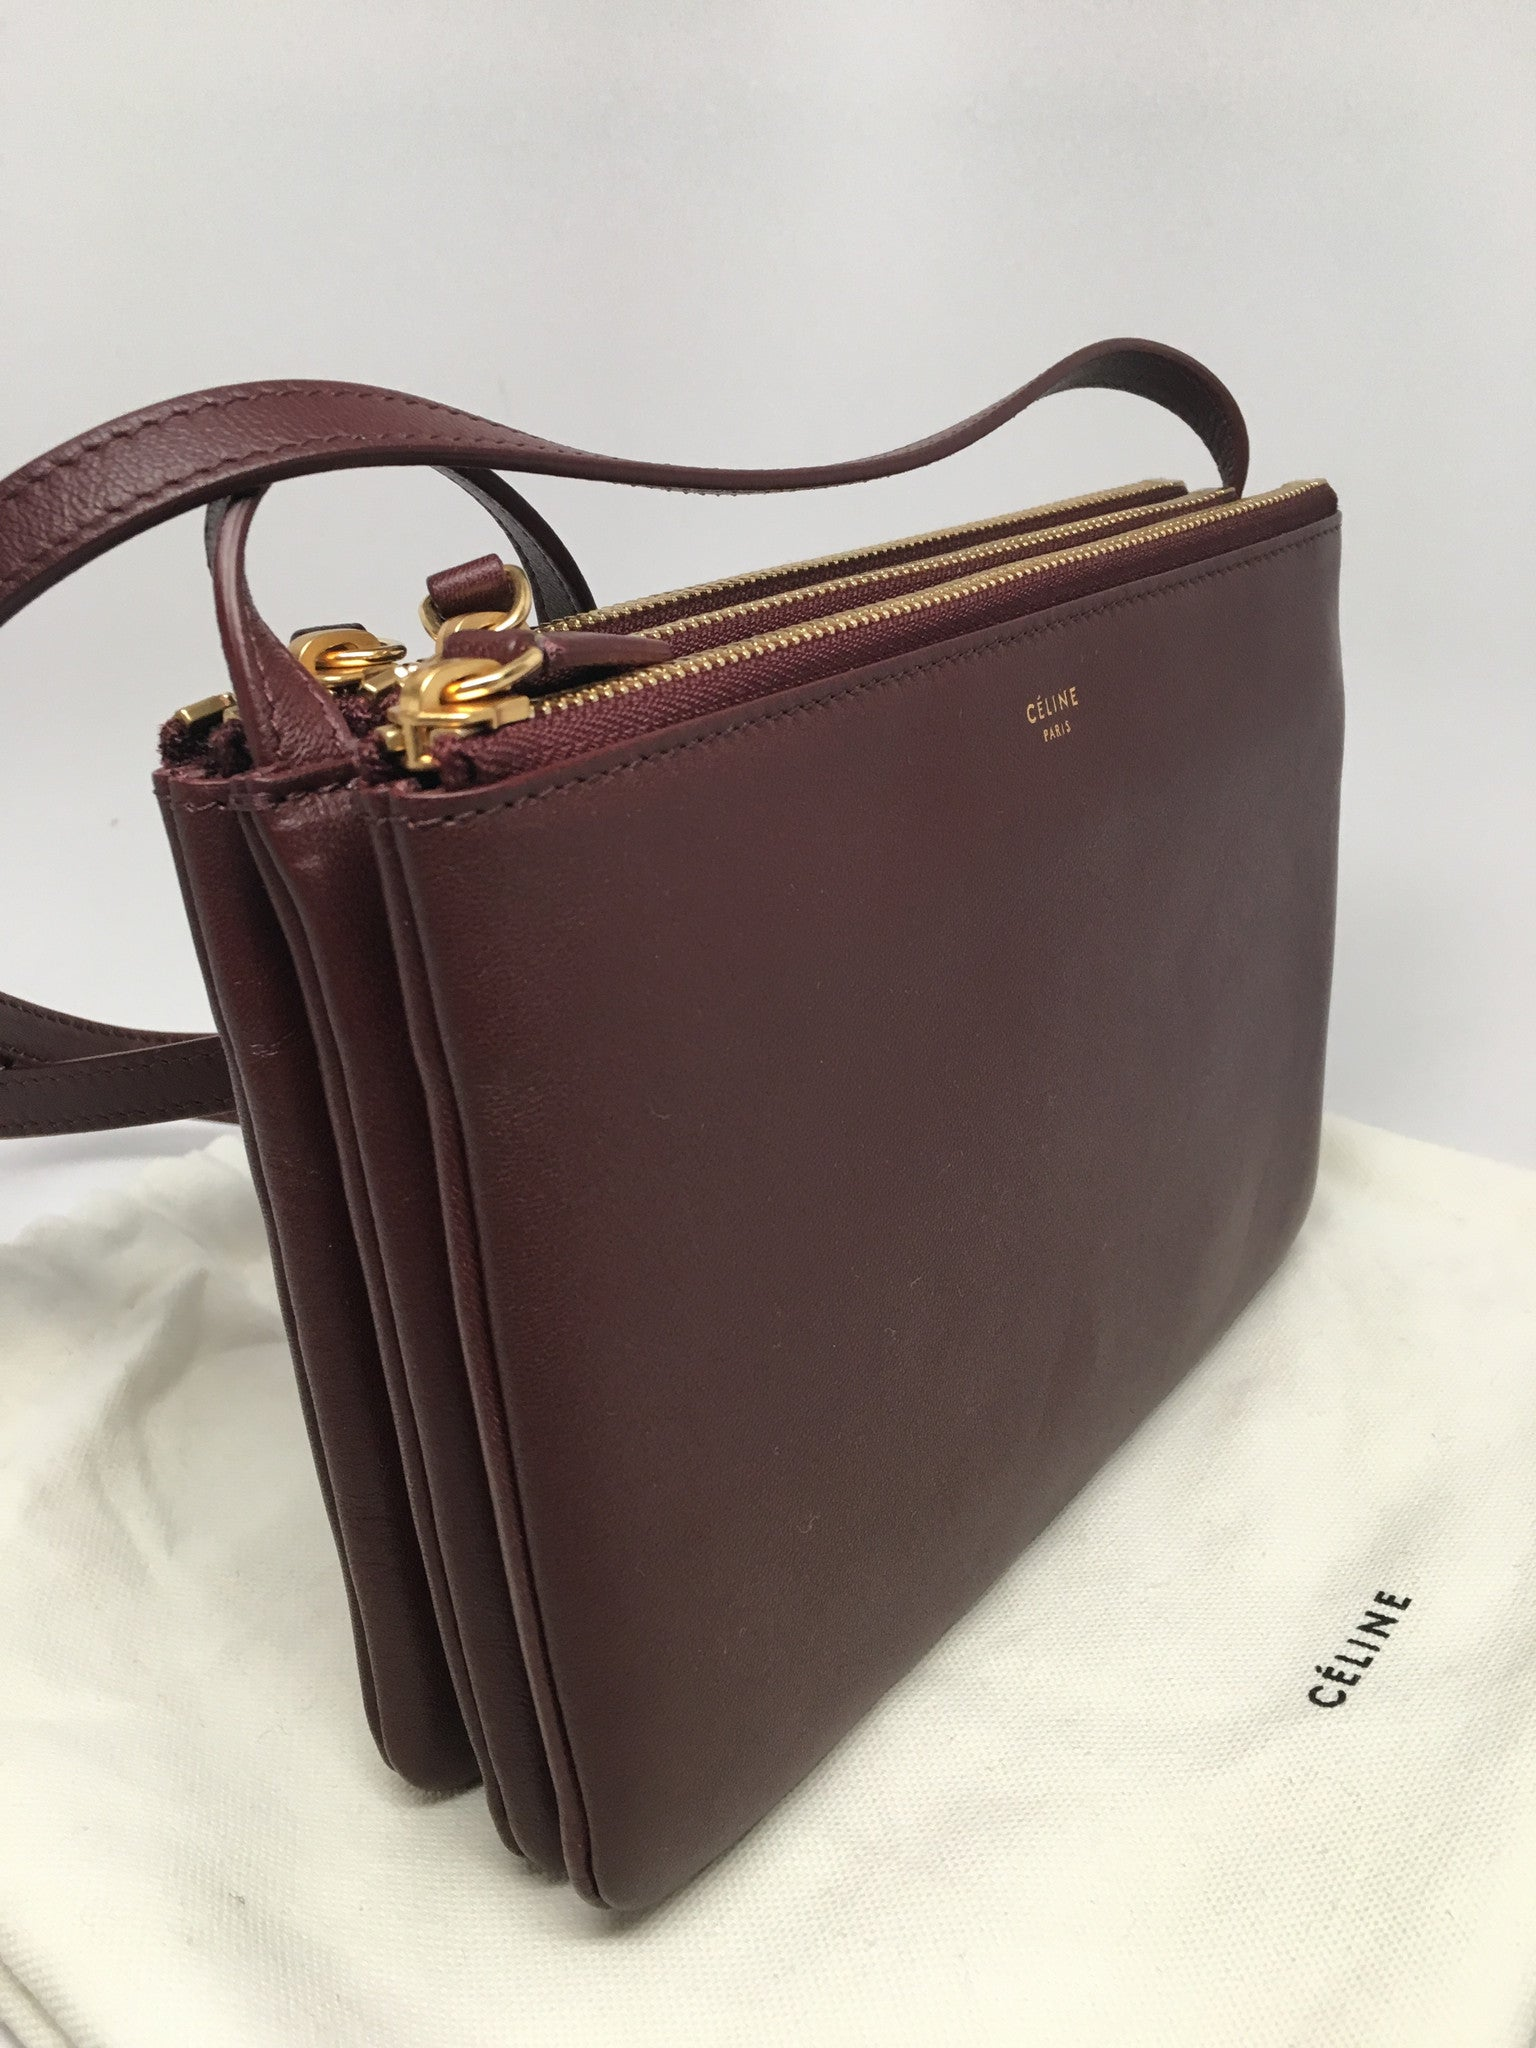 0a90433b9a0 CELINE TRIO BURGUNDY CROSS BODY BAG – Hebster Boutique